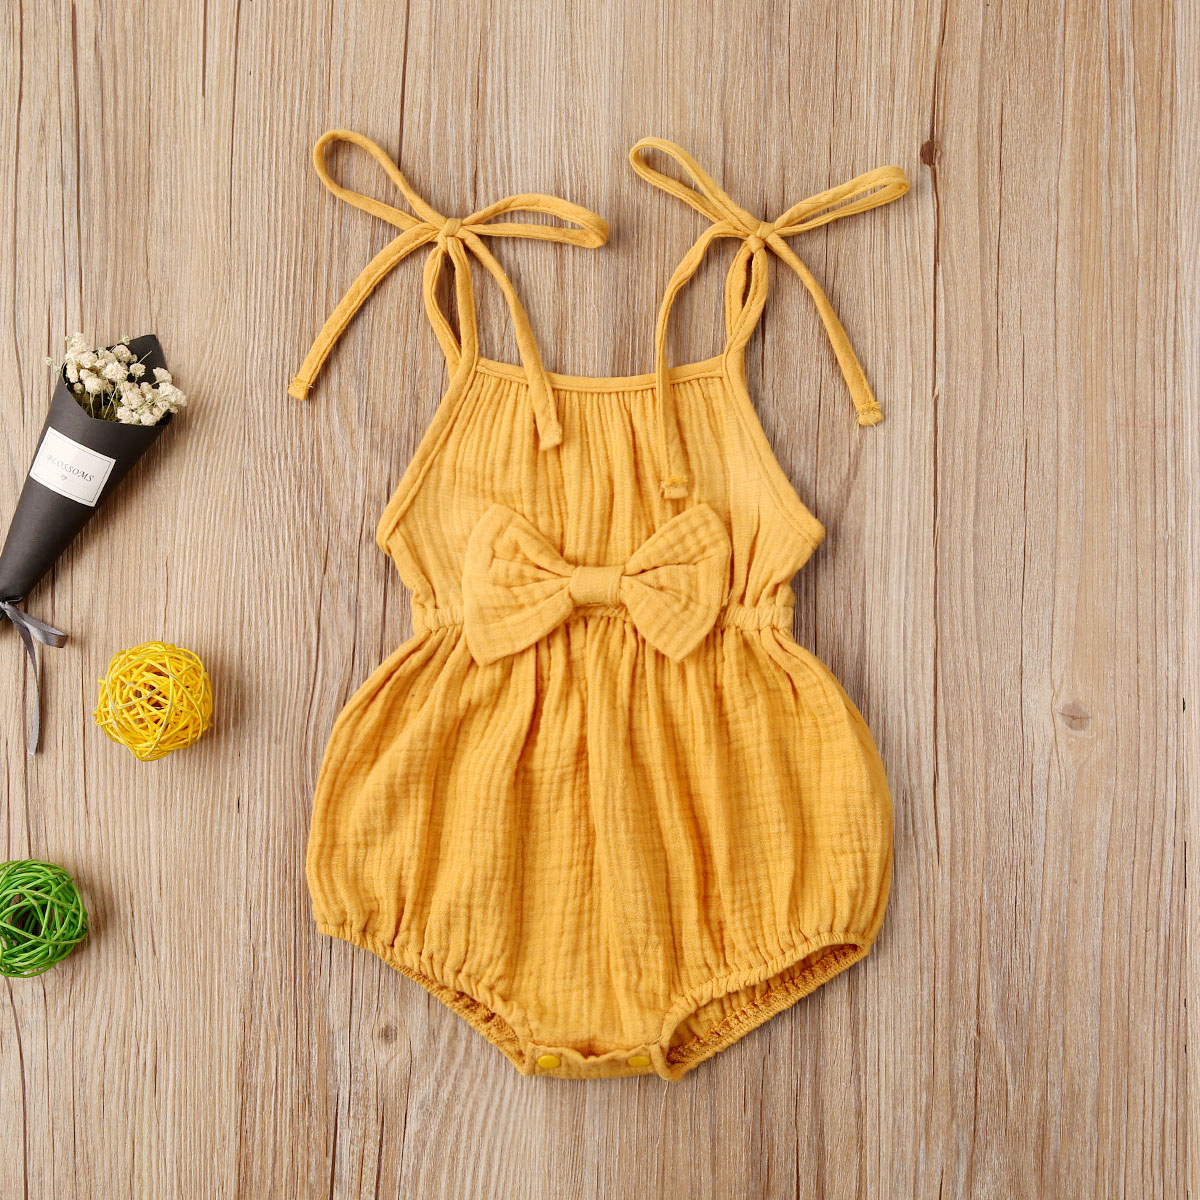 Emmababy Newborn Baby Girl Clothes Solid Color Knitted Cotton Sling Bowknot Romper Jumpsuit One-Piece Outfit Sunsuit Clothes